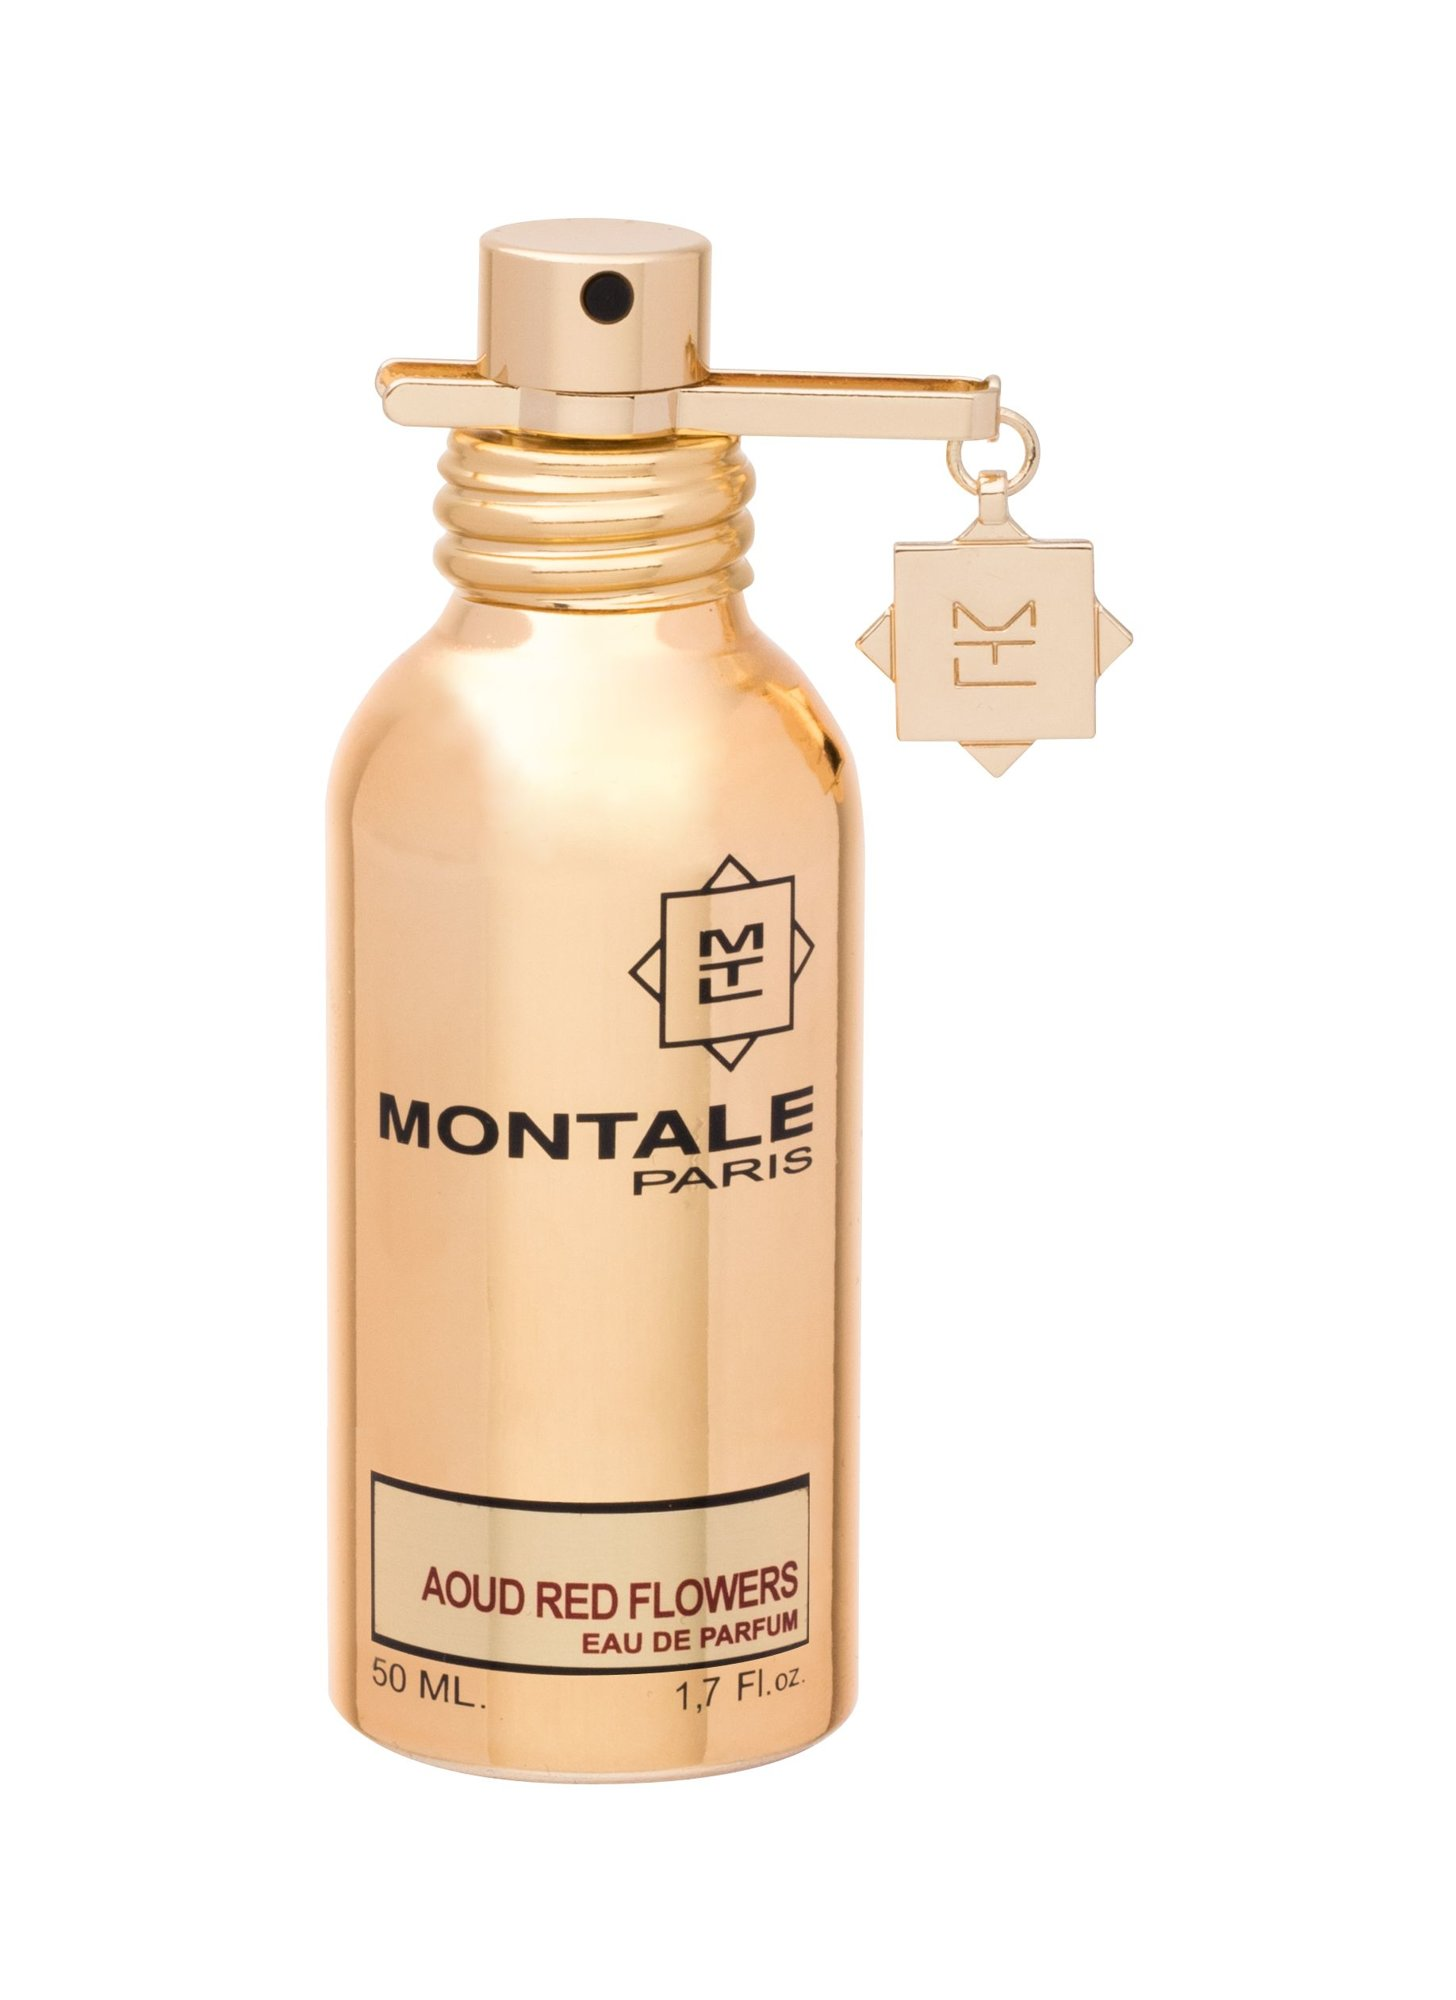 Montale Paris Aoud Red Flowers EDP 50ml